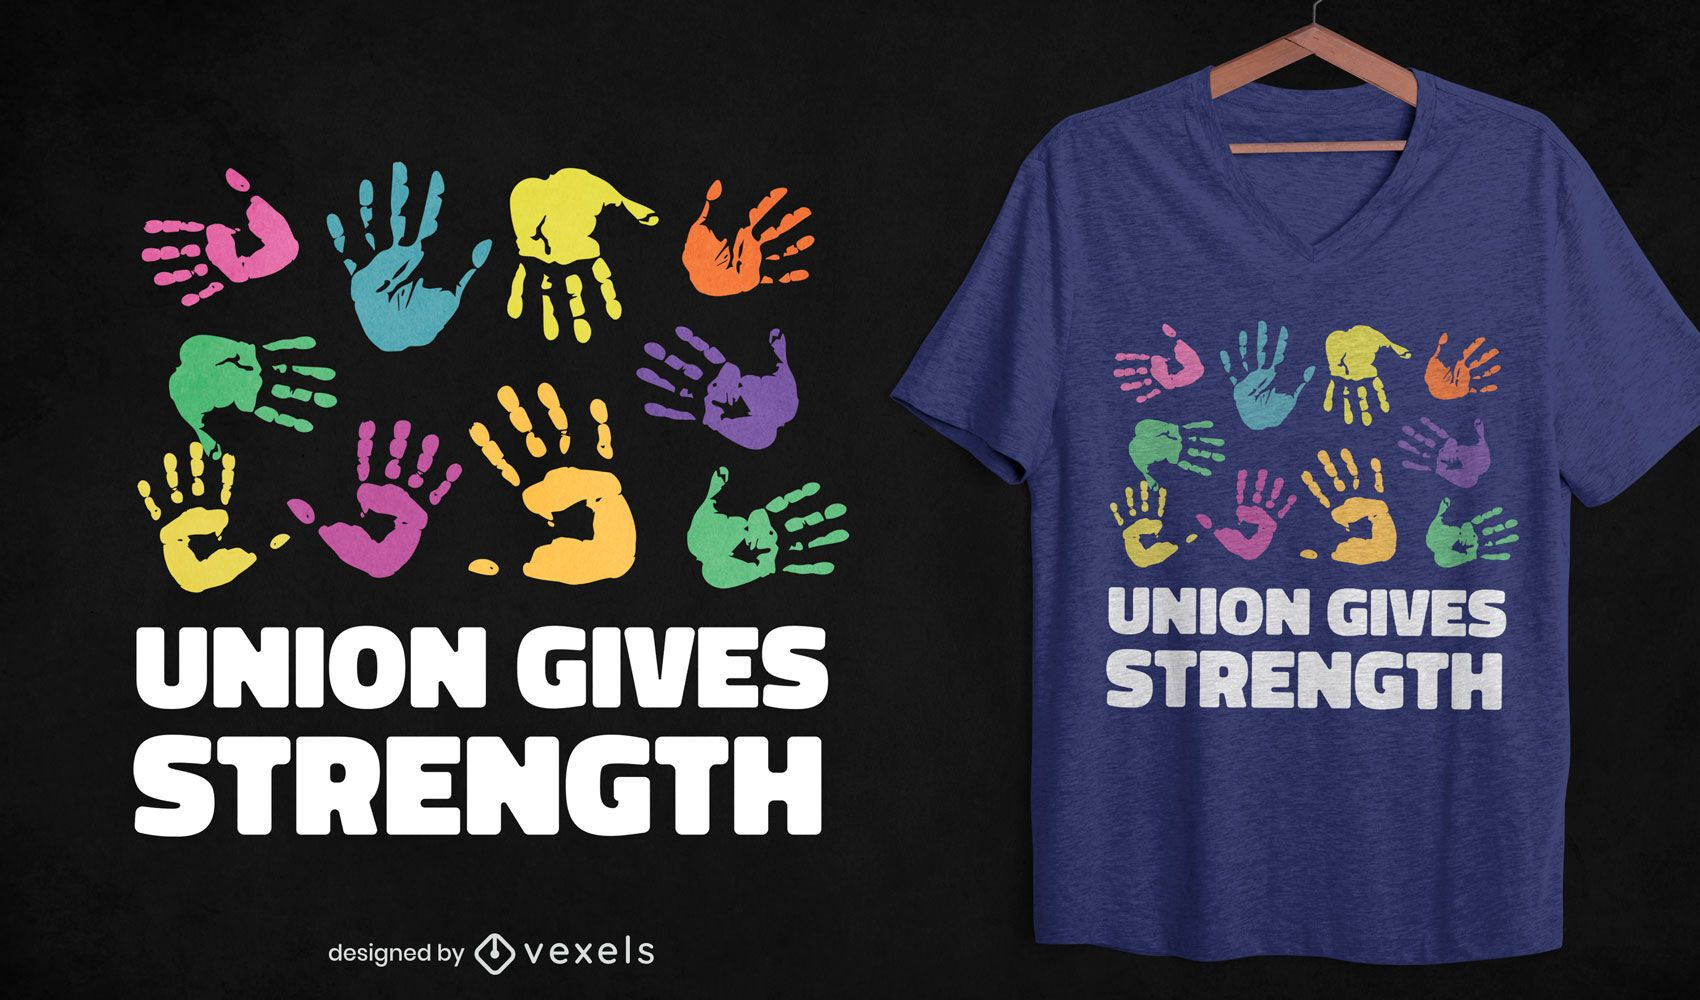 Union gives strength t-shirt design